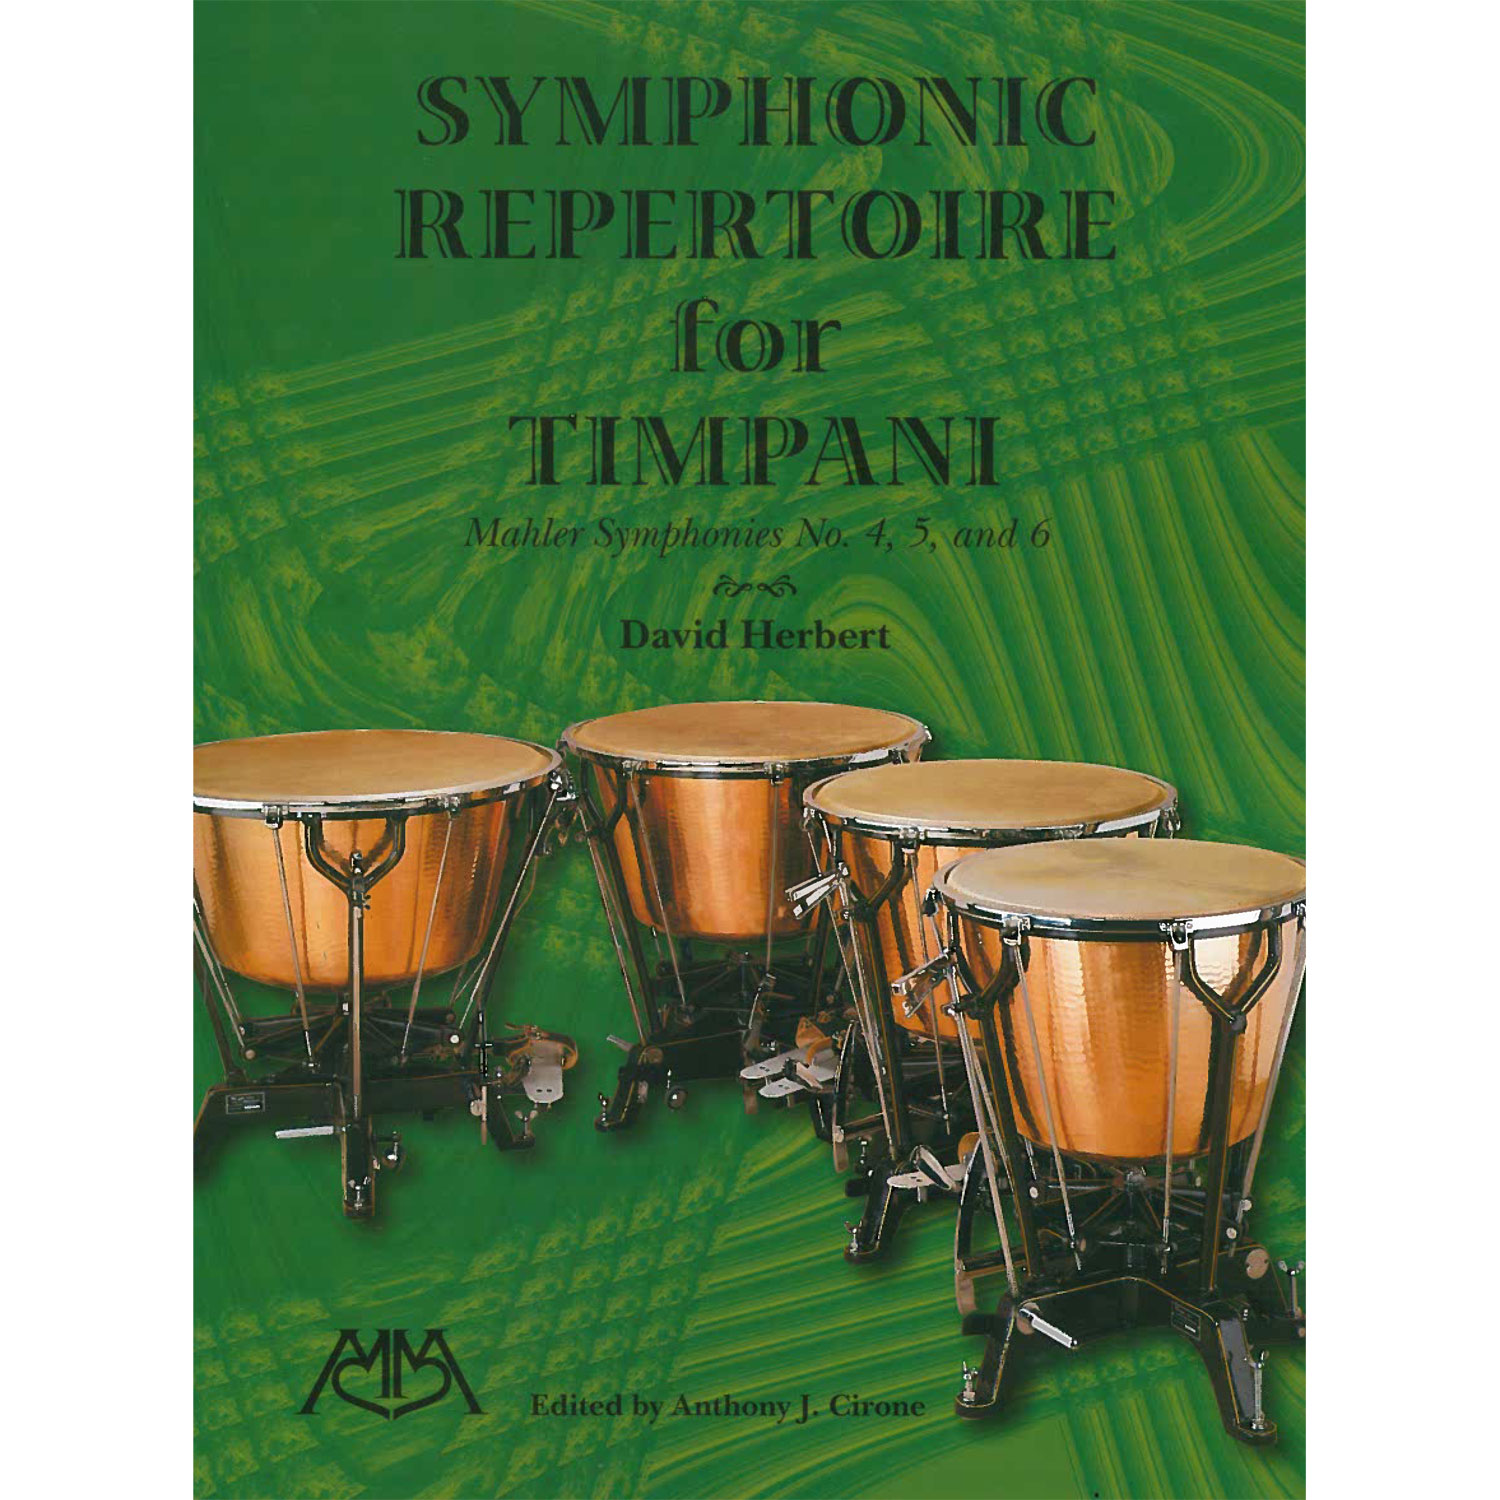 Symphonic Repertoire For Timpani: Mahler Symphonies 4-6 by David Herbert ed. Cirone